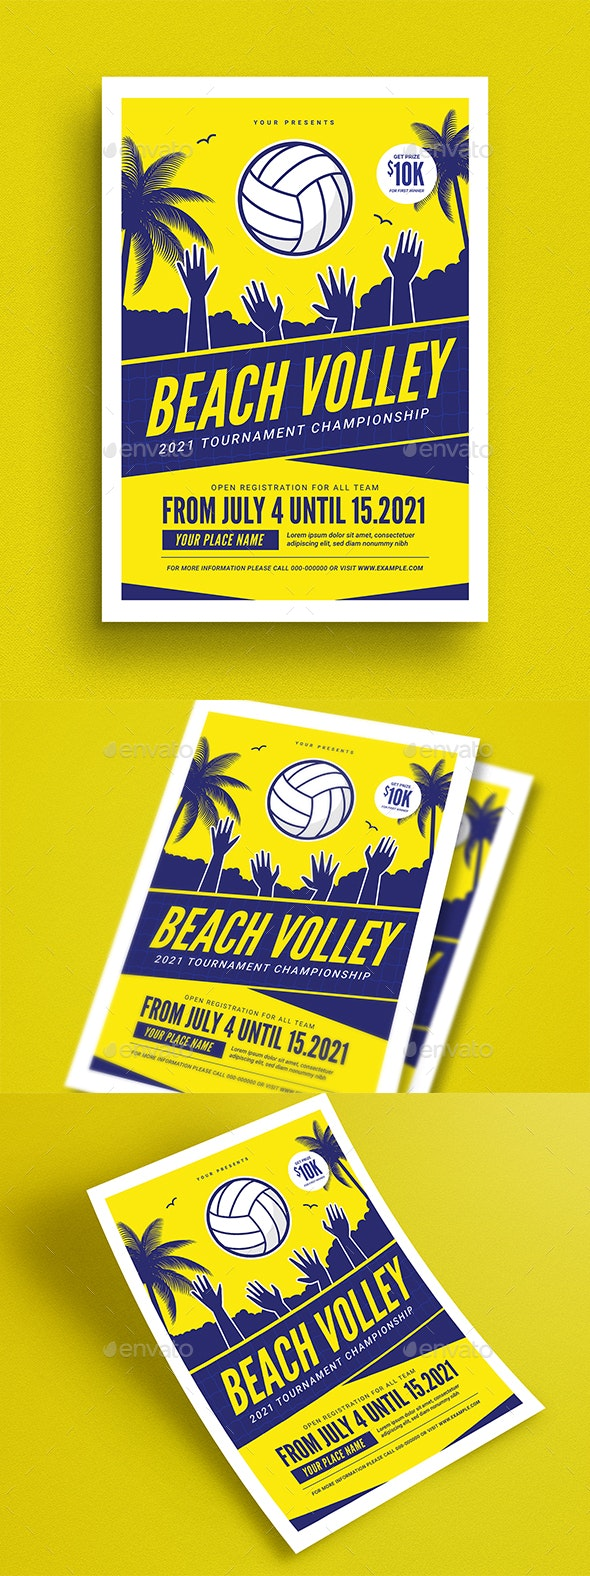 Beach Volleyball Tournament Flyer - Flyers Print Templates